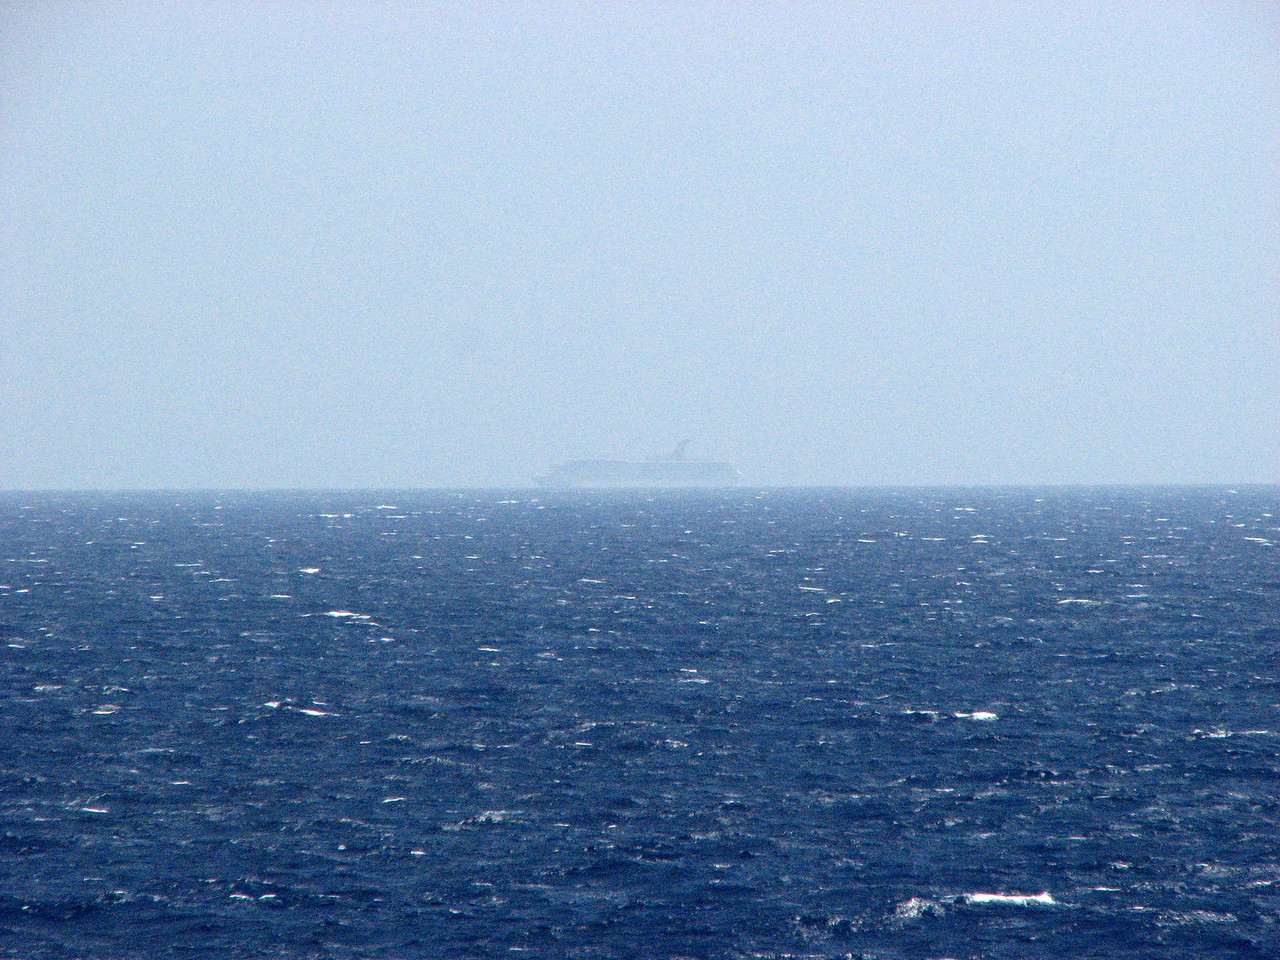 A ship in the distance